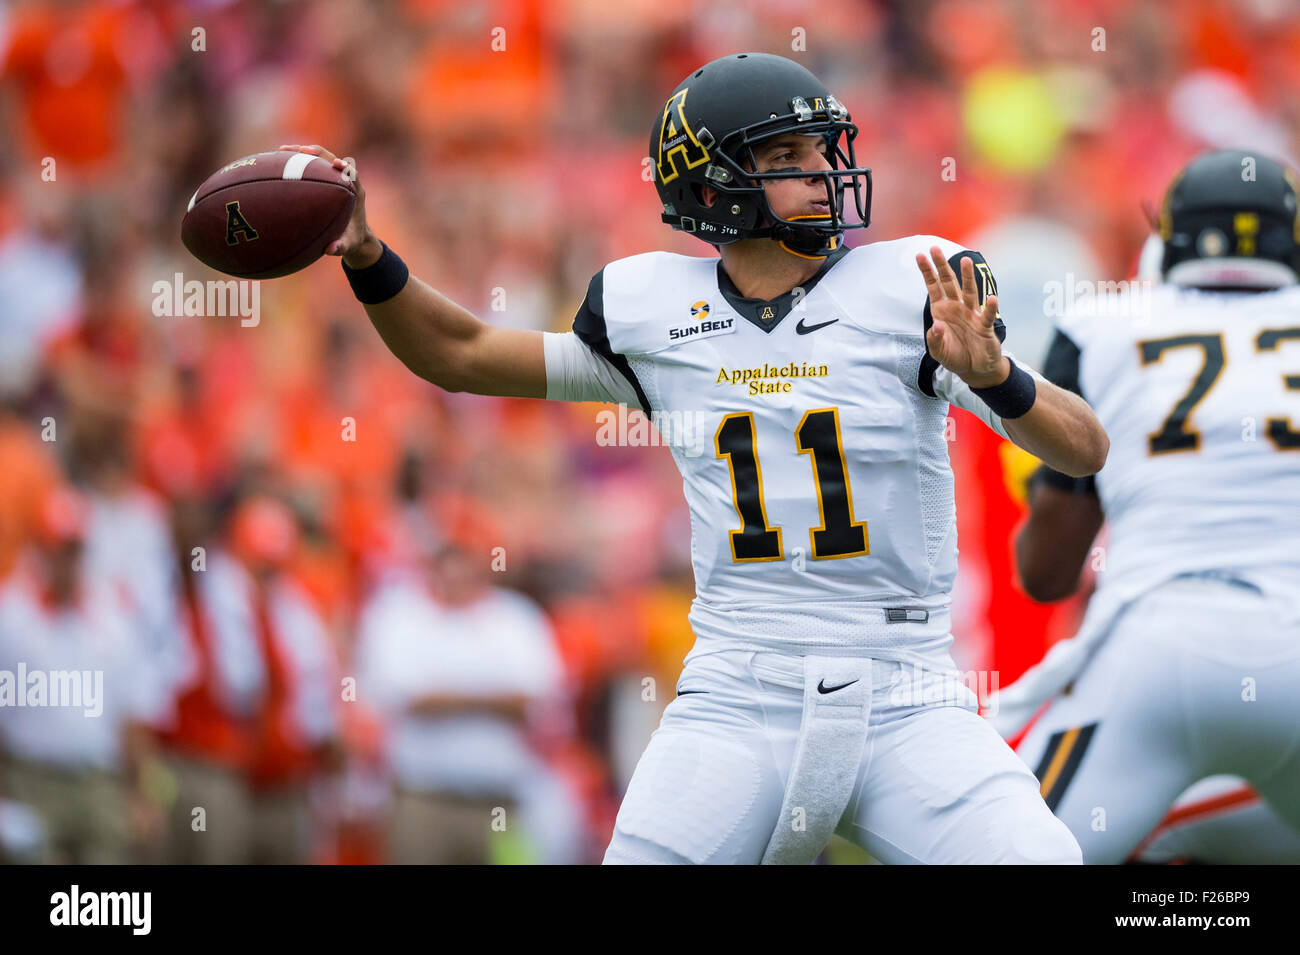 App State Quarterback Taylor Lamb 11 During The Ncaa College Stock Photo Alamy